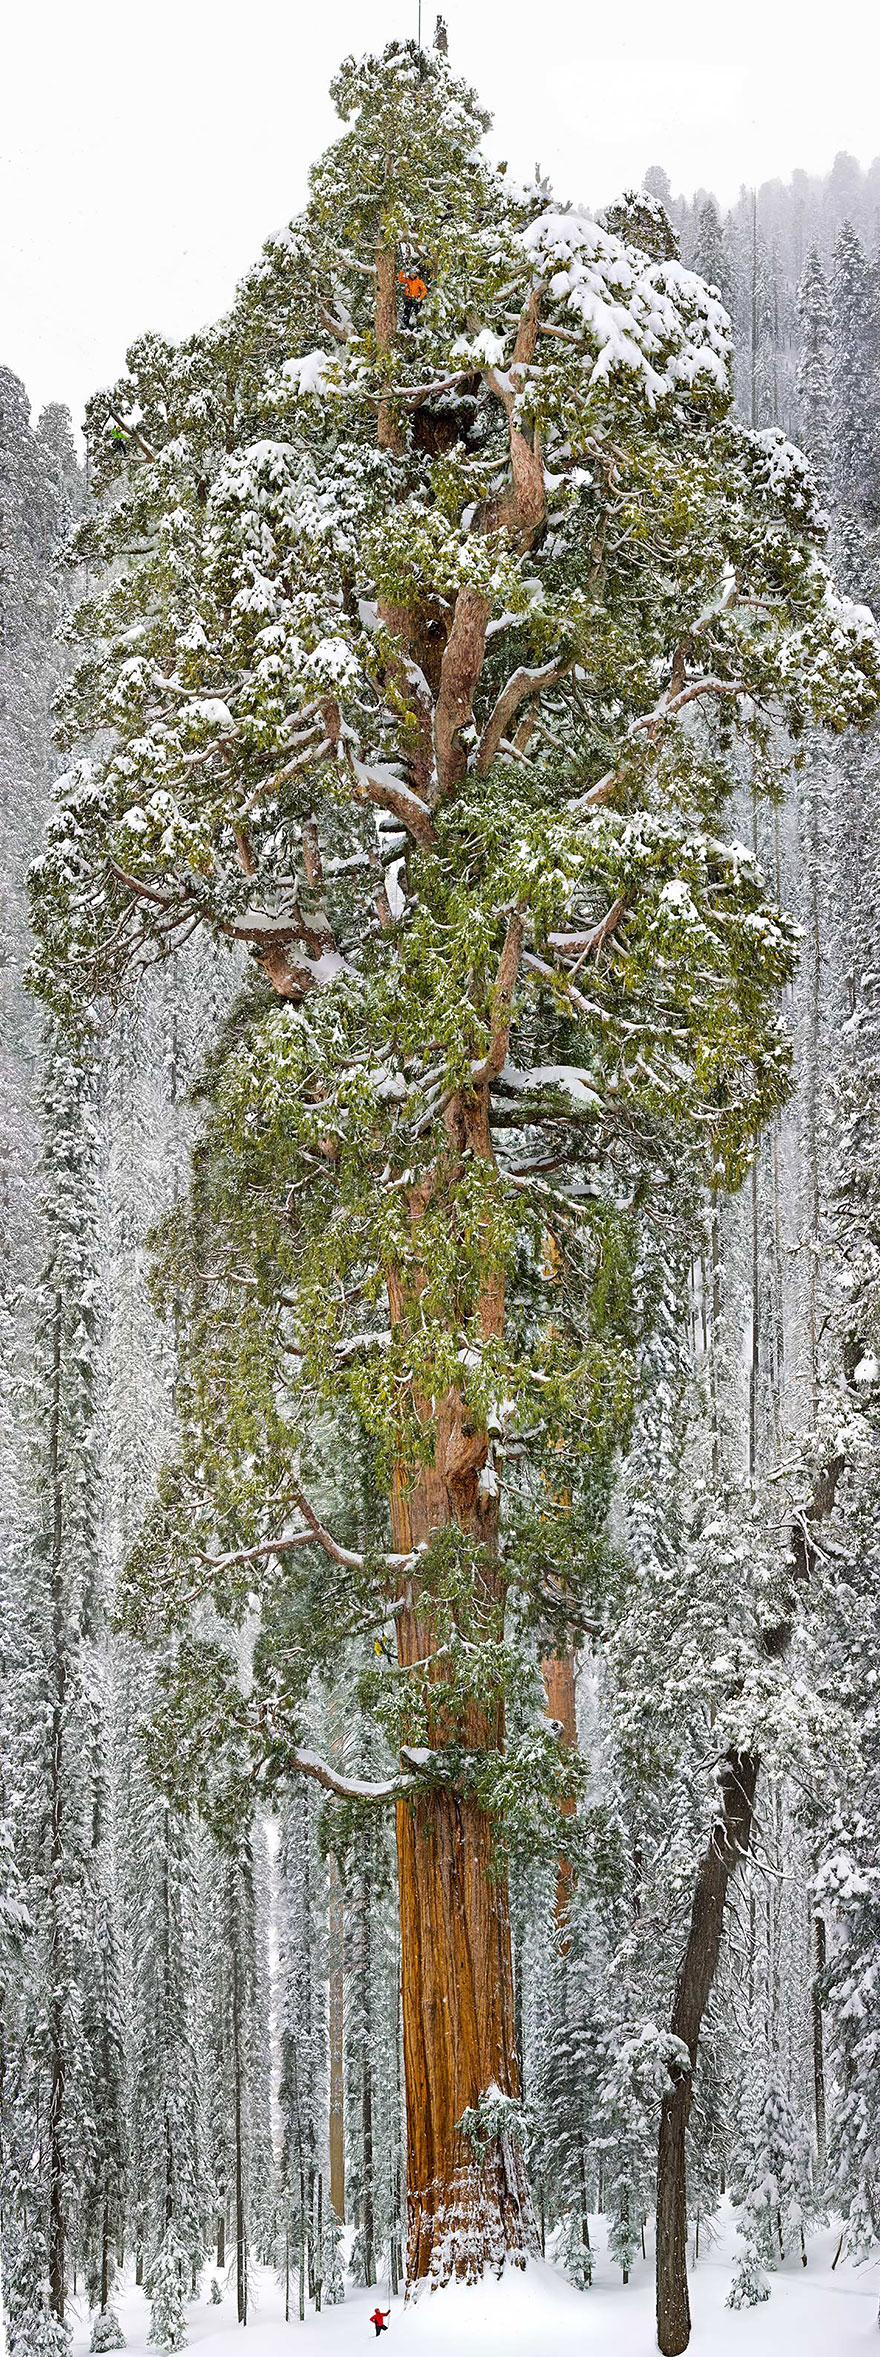 Tallest tree in the world